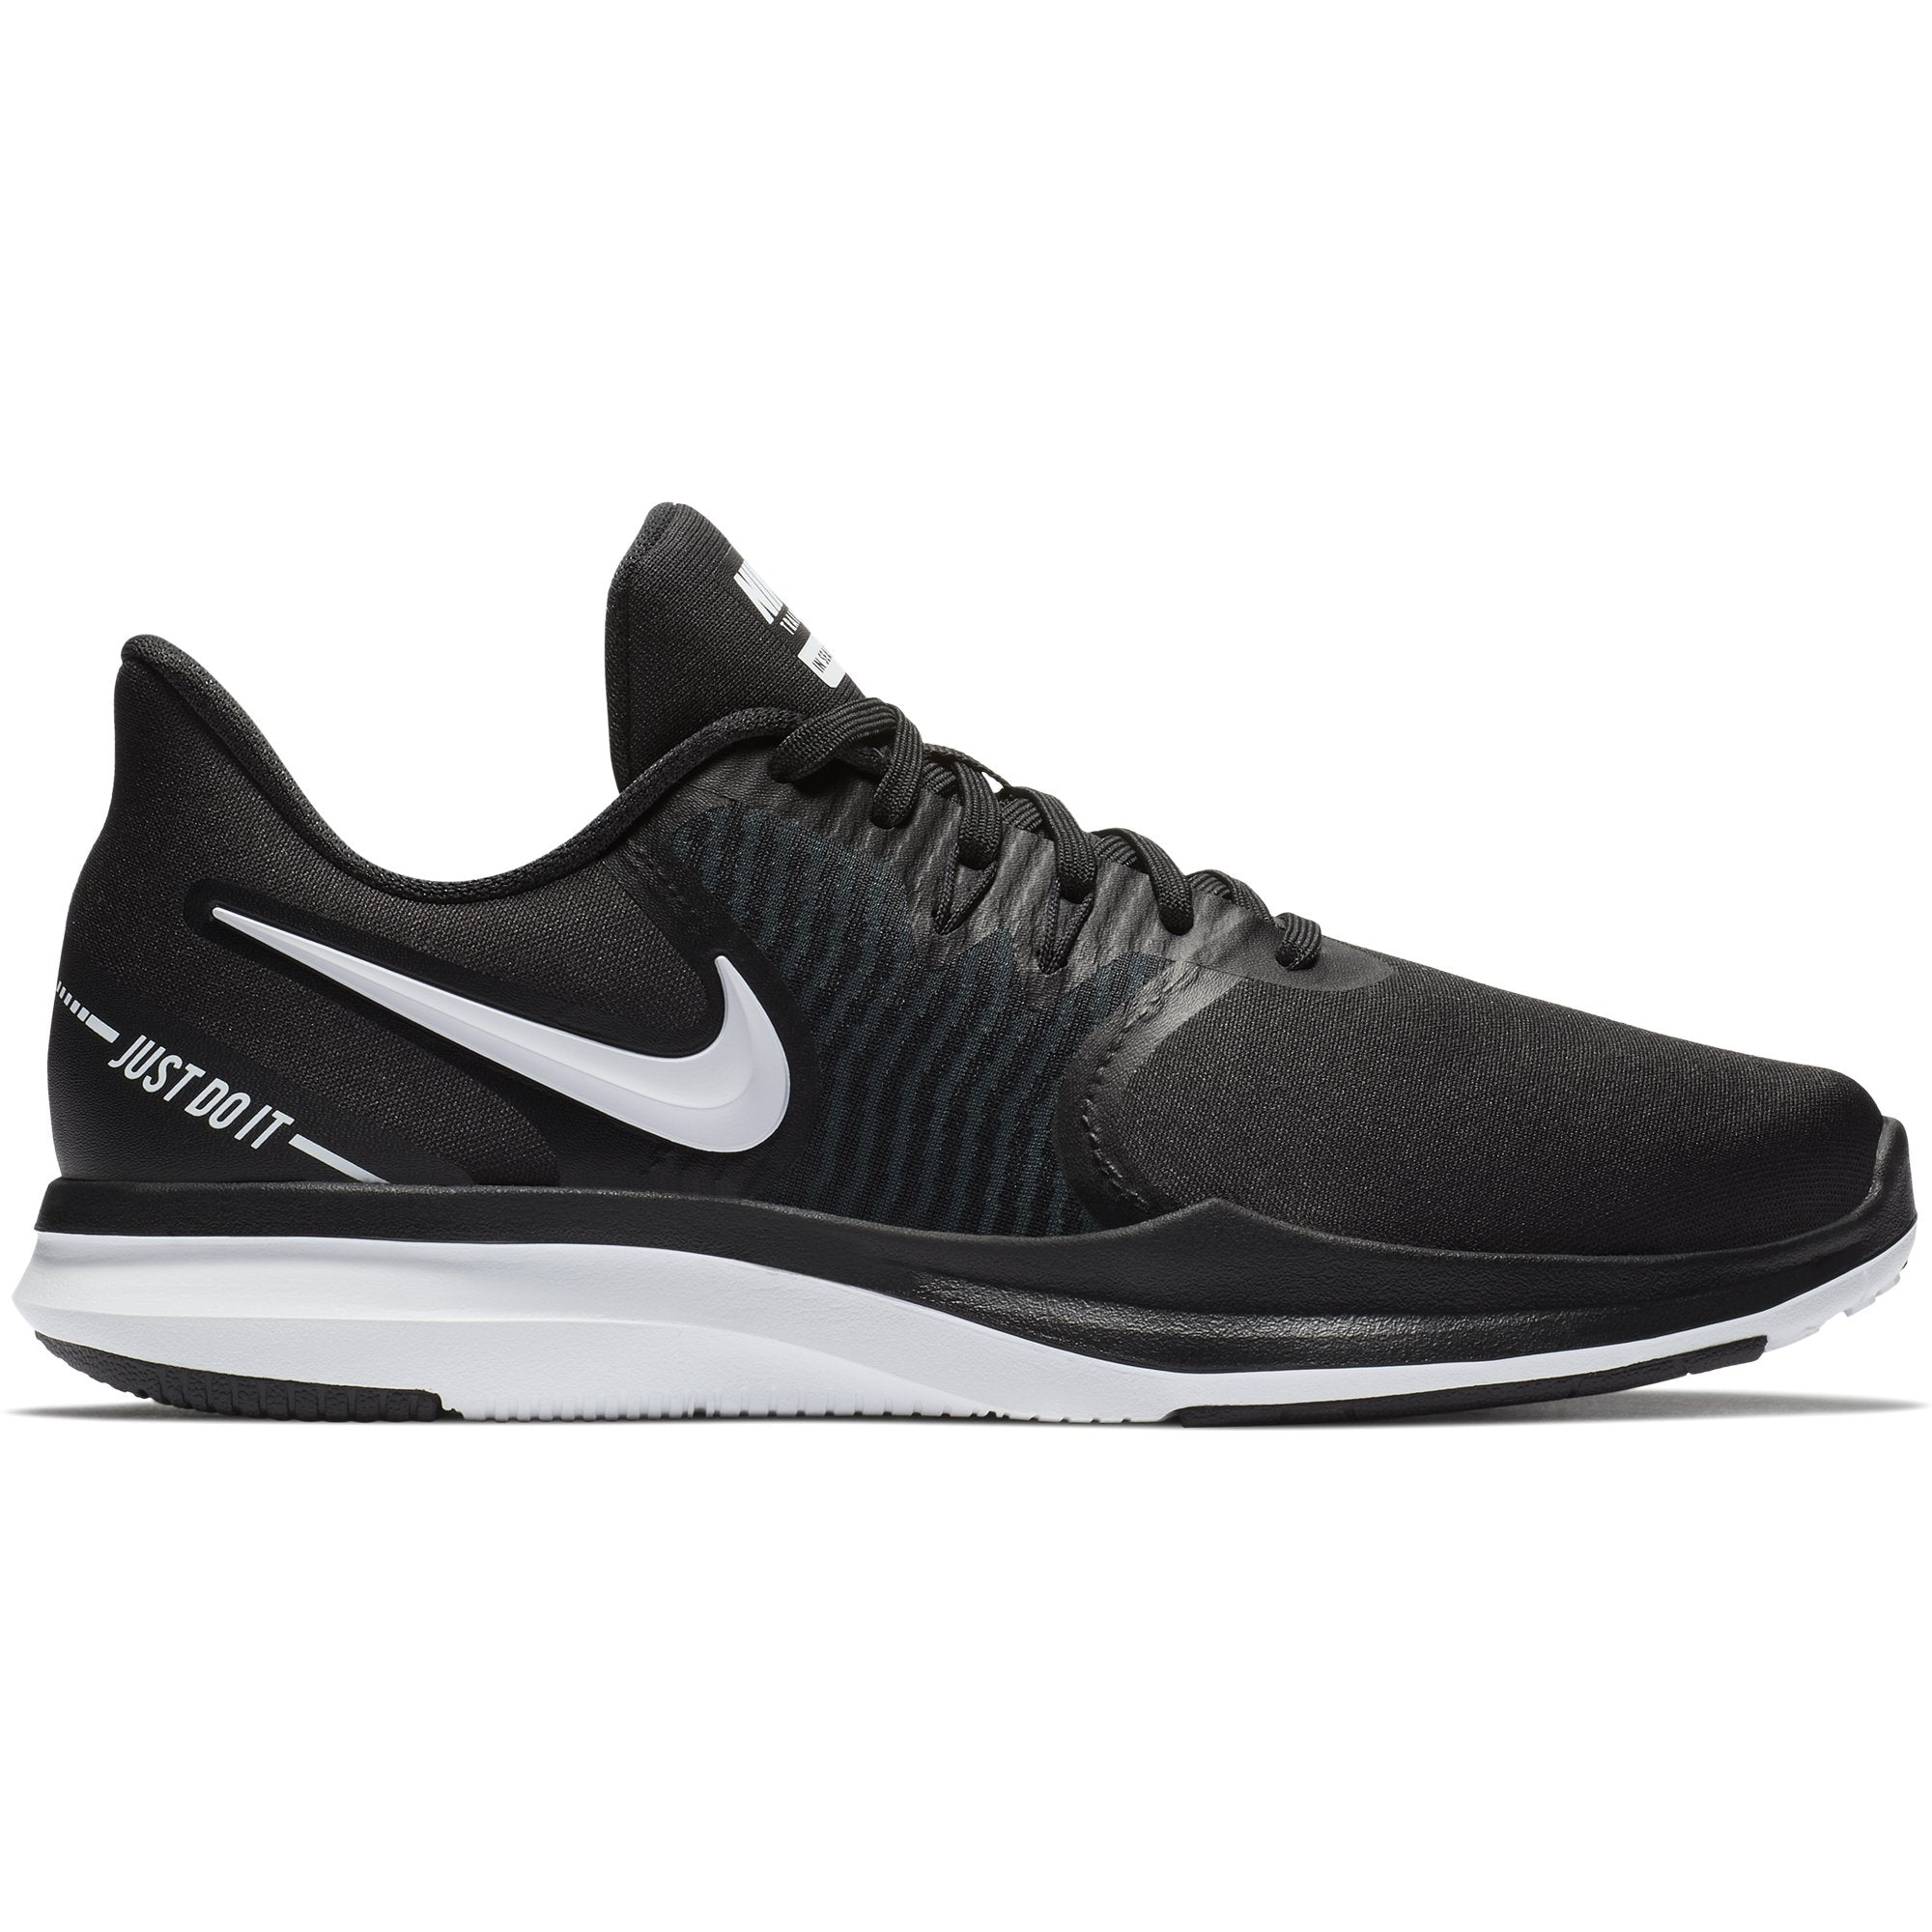 quality design aac5a 799c7 Buy Nike Women In-Season Tr 8 Training Shoes, Black White Anthracite Online  in Singapore   Royal Sporting House